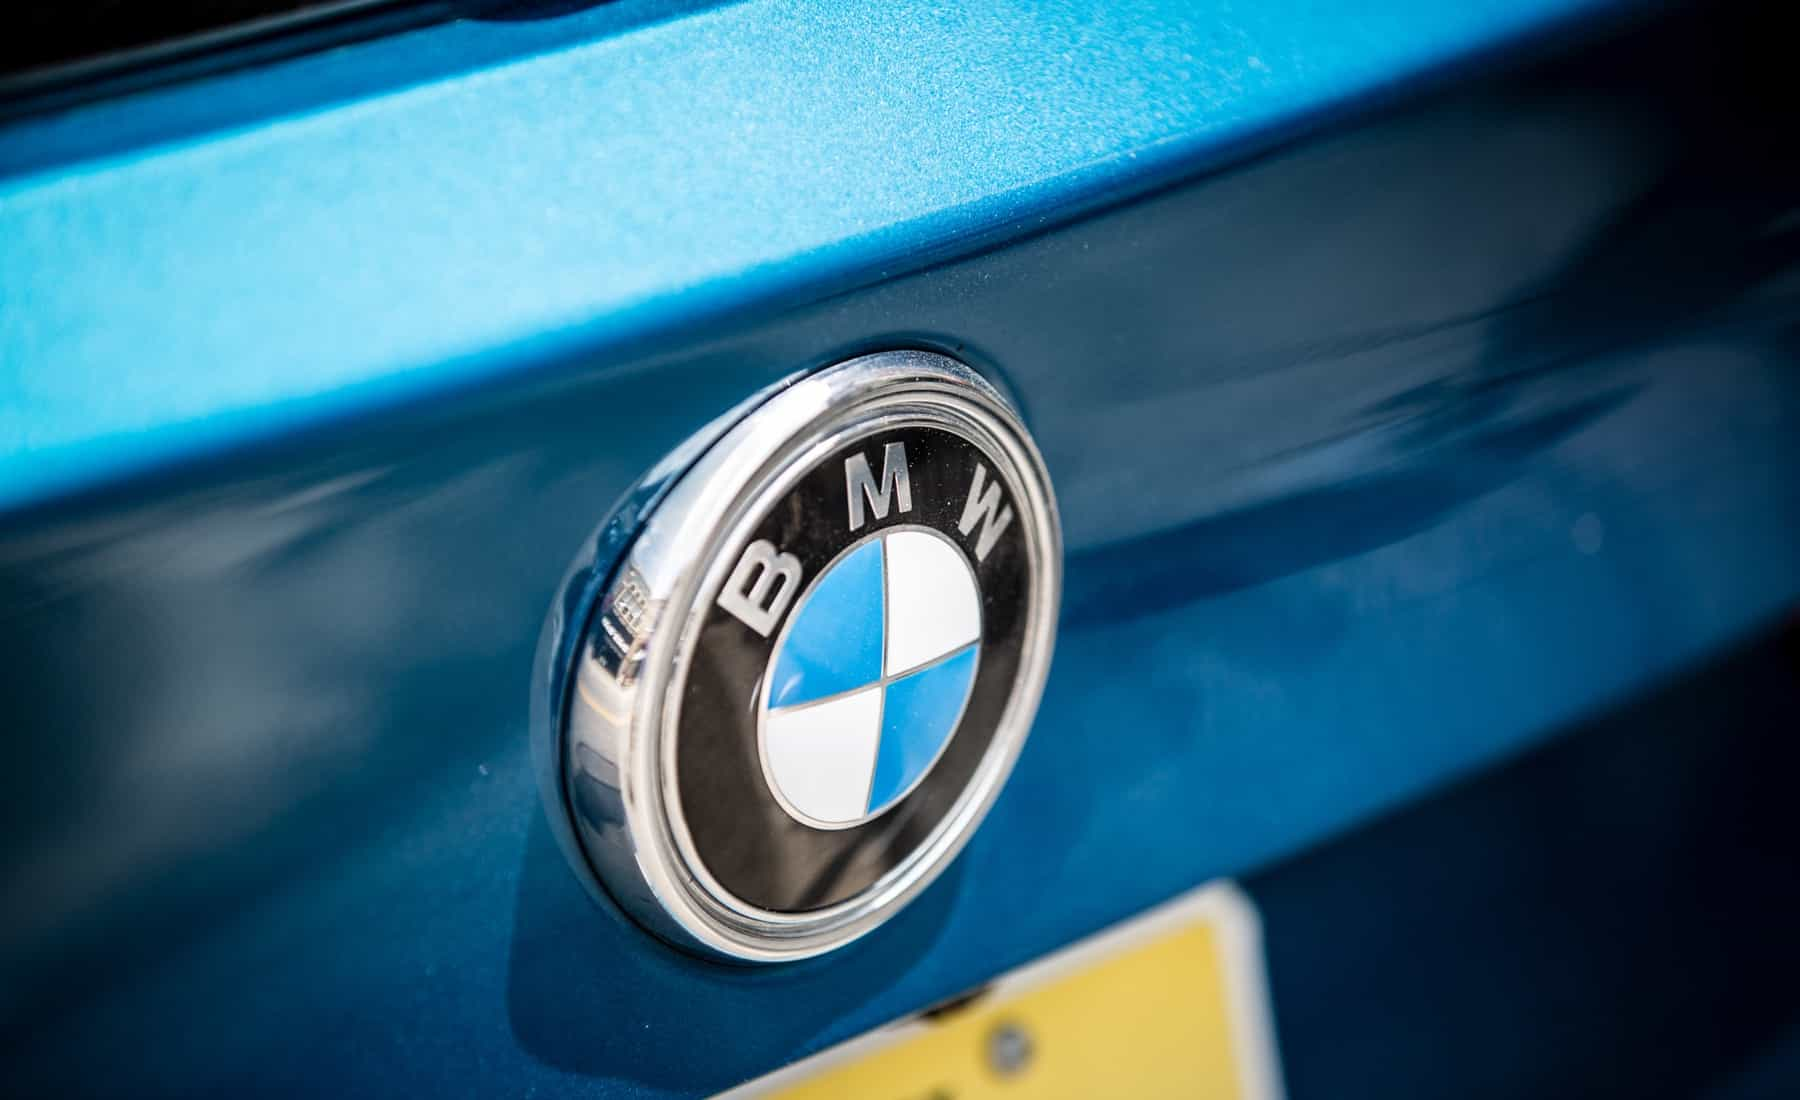 2017 BMW X5 M Exterior View Rear BMW Badge (Photo 11 of 35)